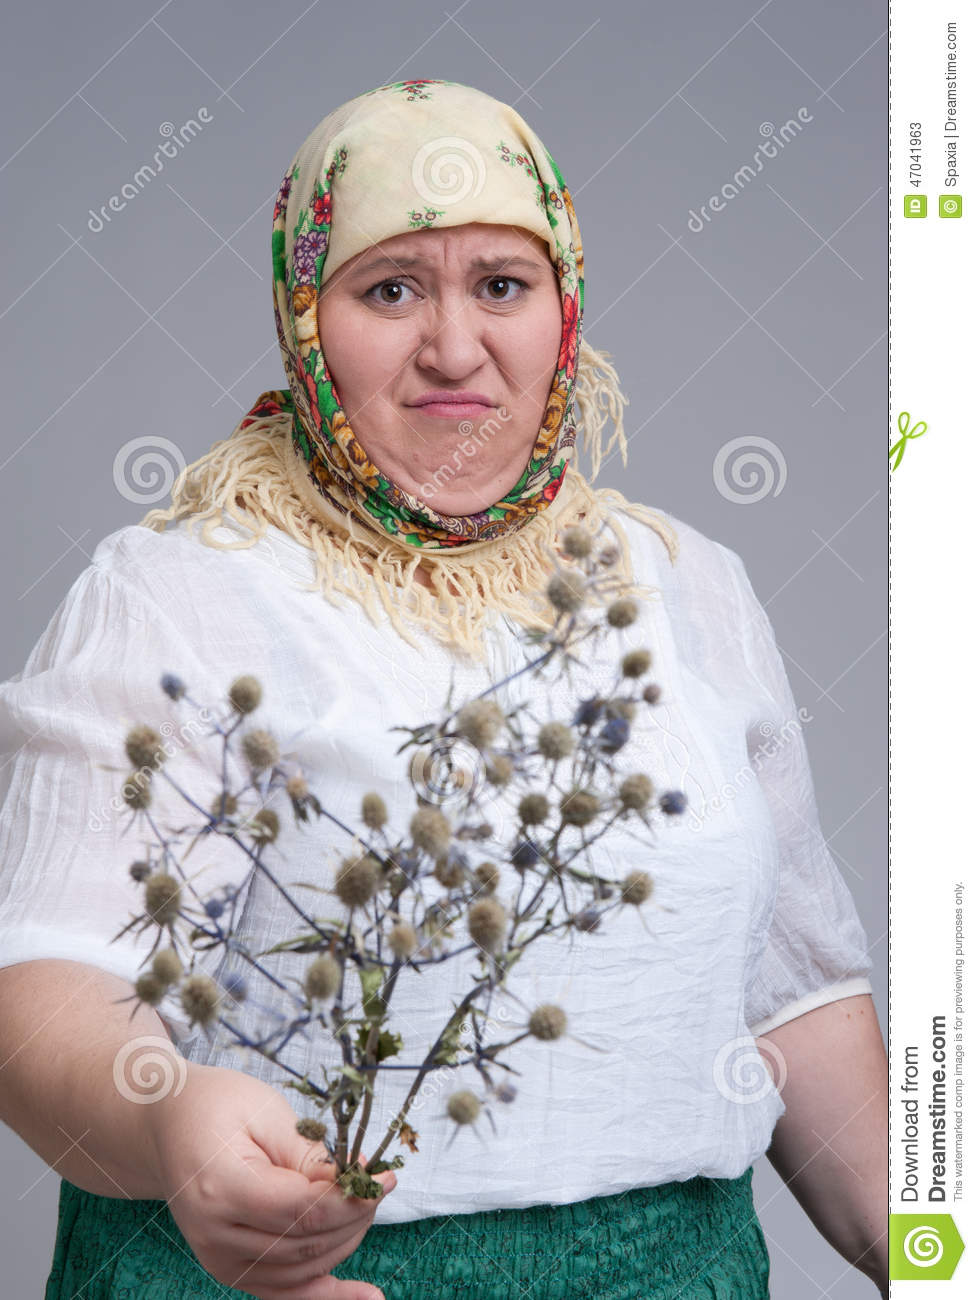 Disgusting woman stock image. Image of young, caucasian ...